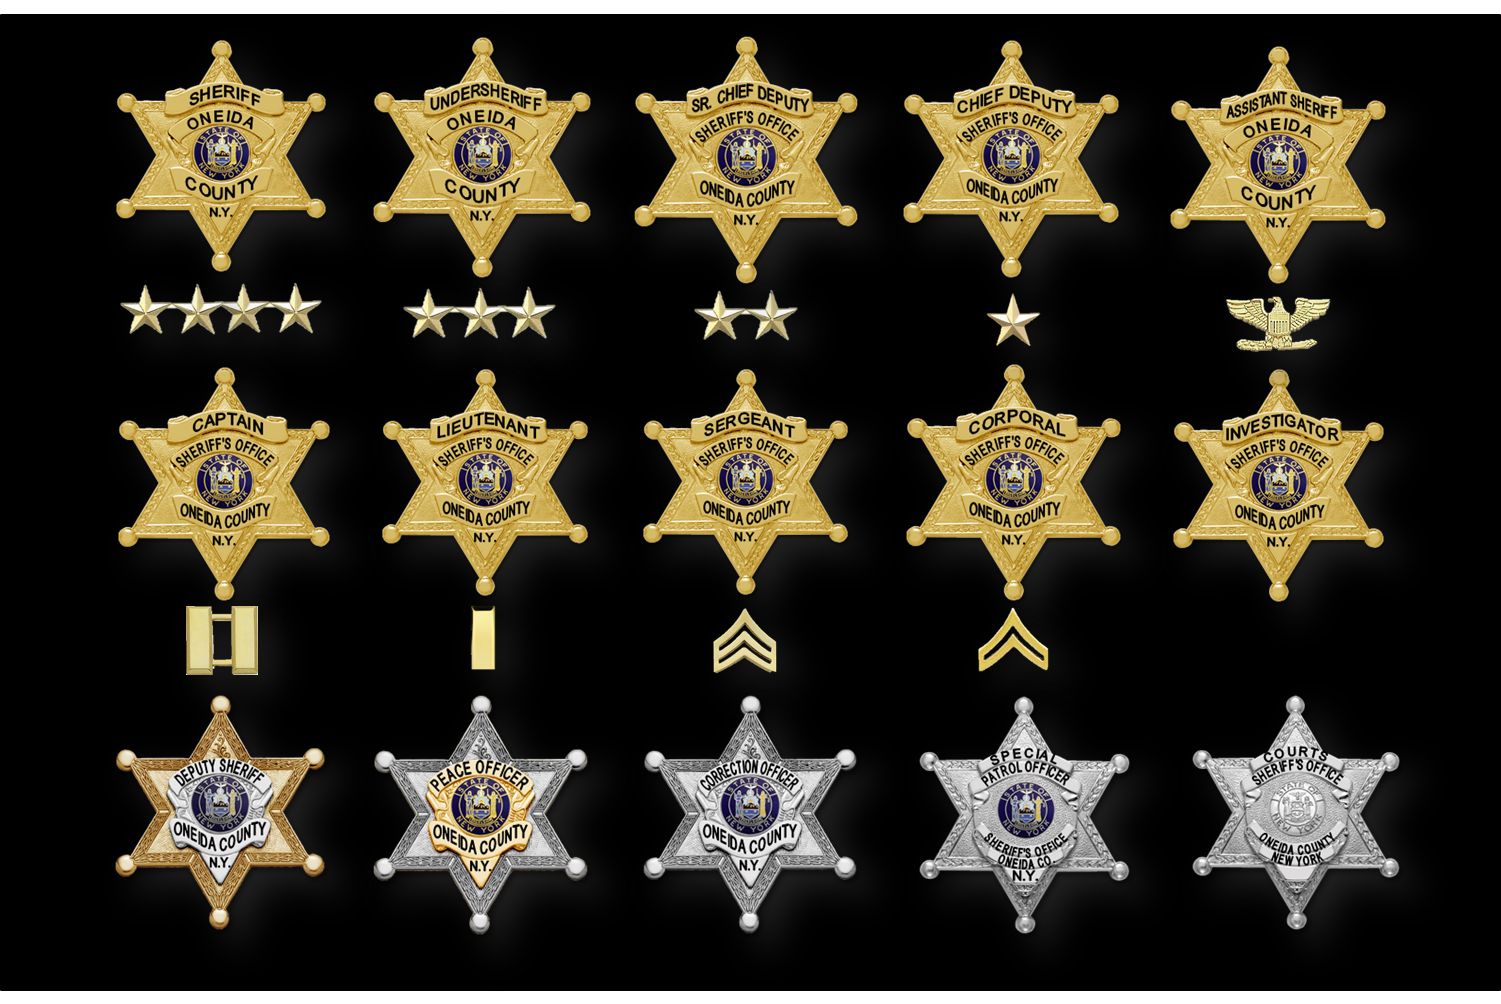 Badges and rank insignia